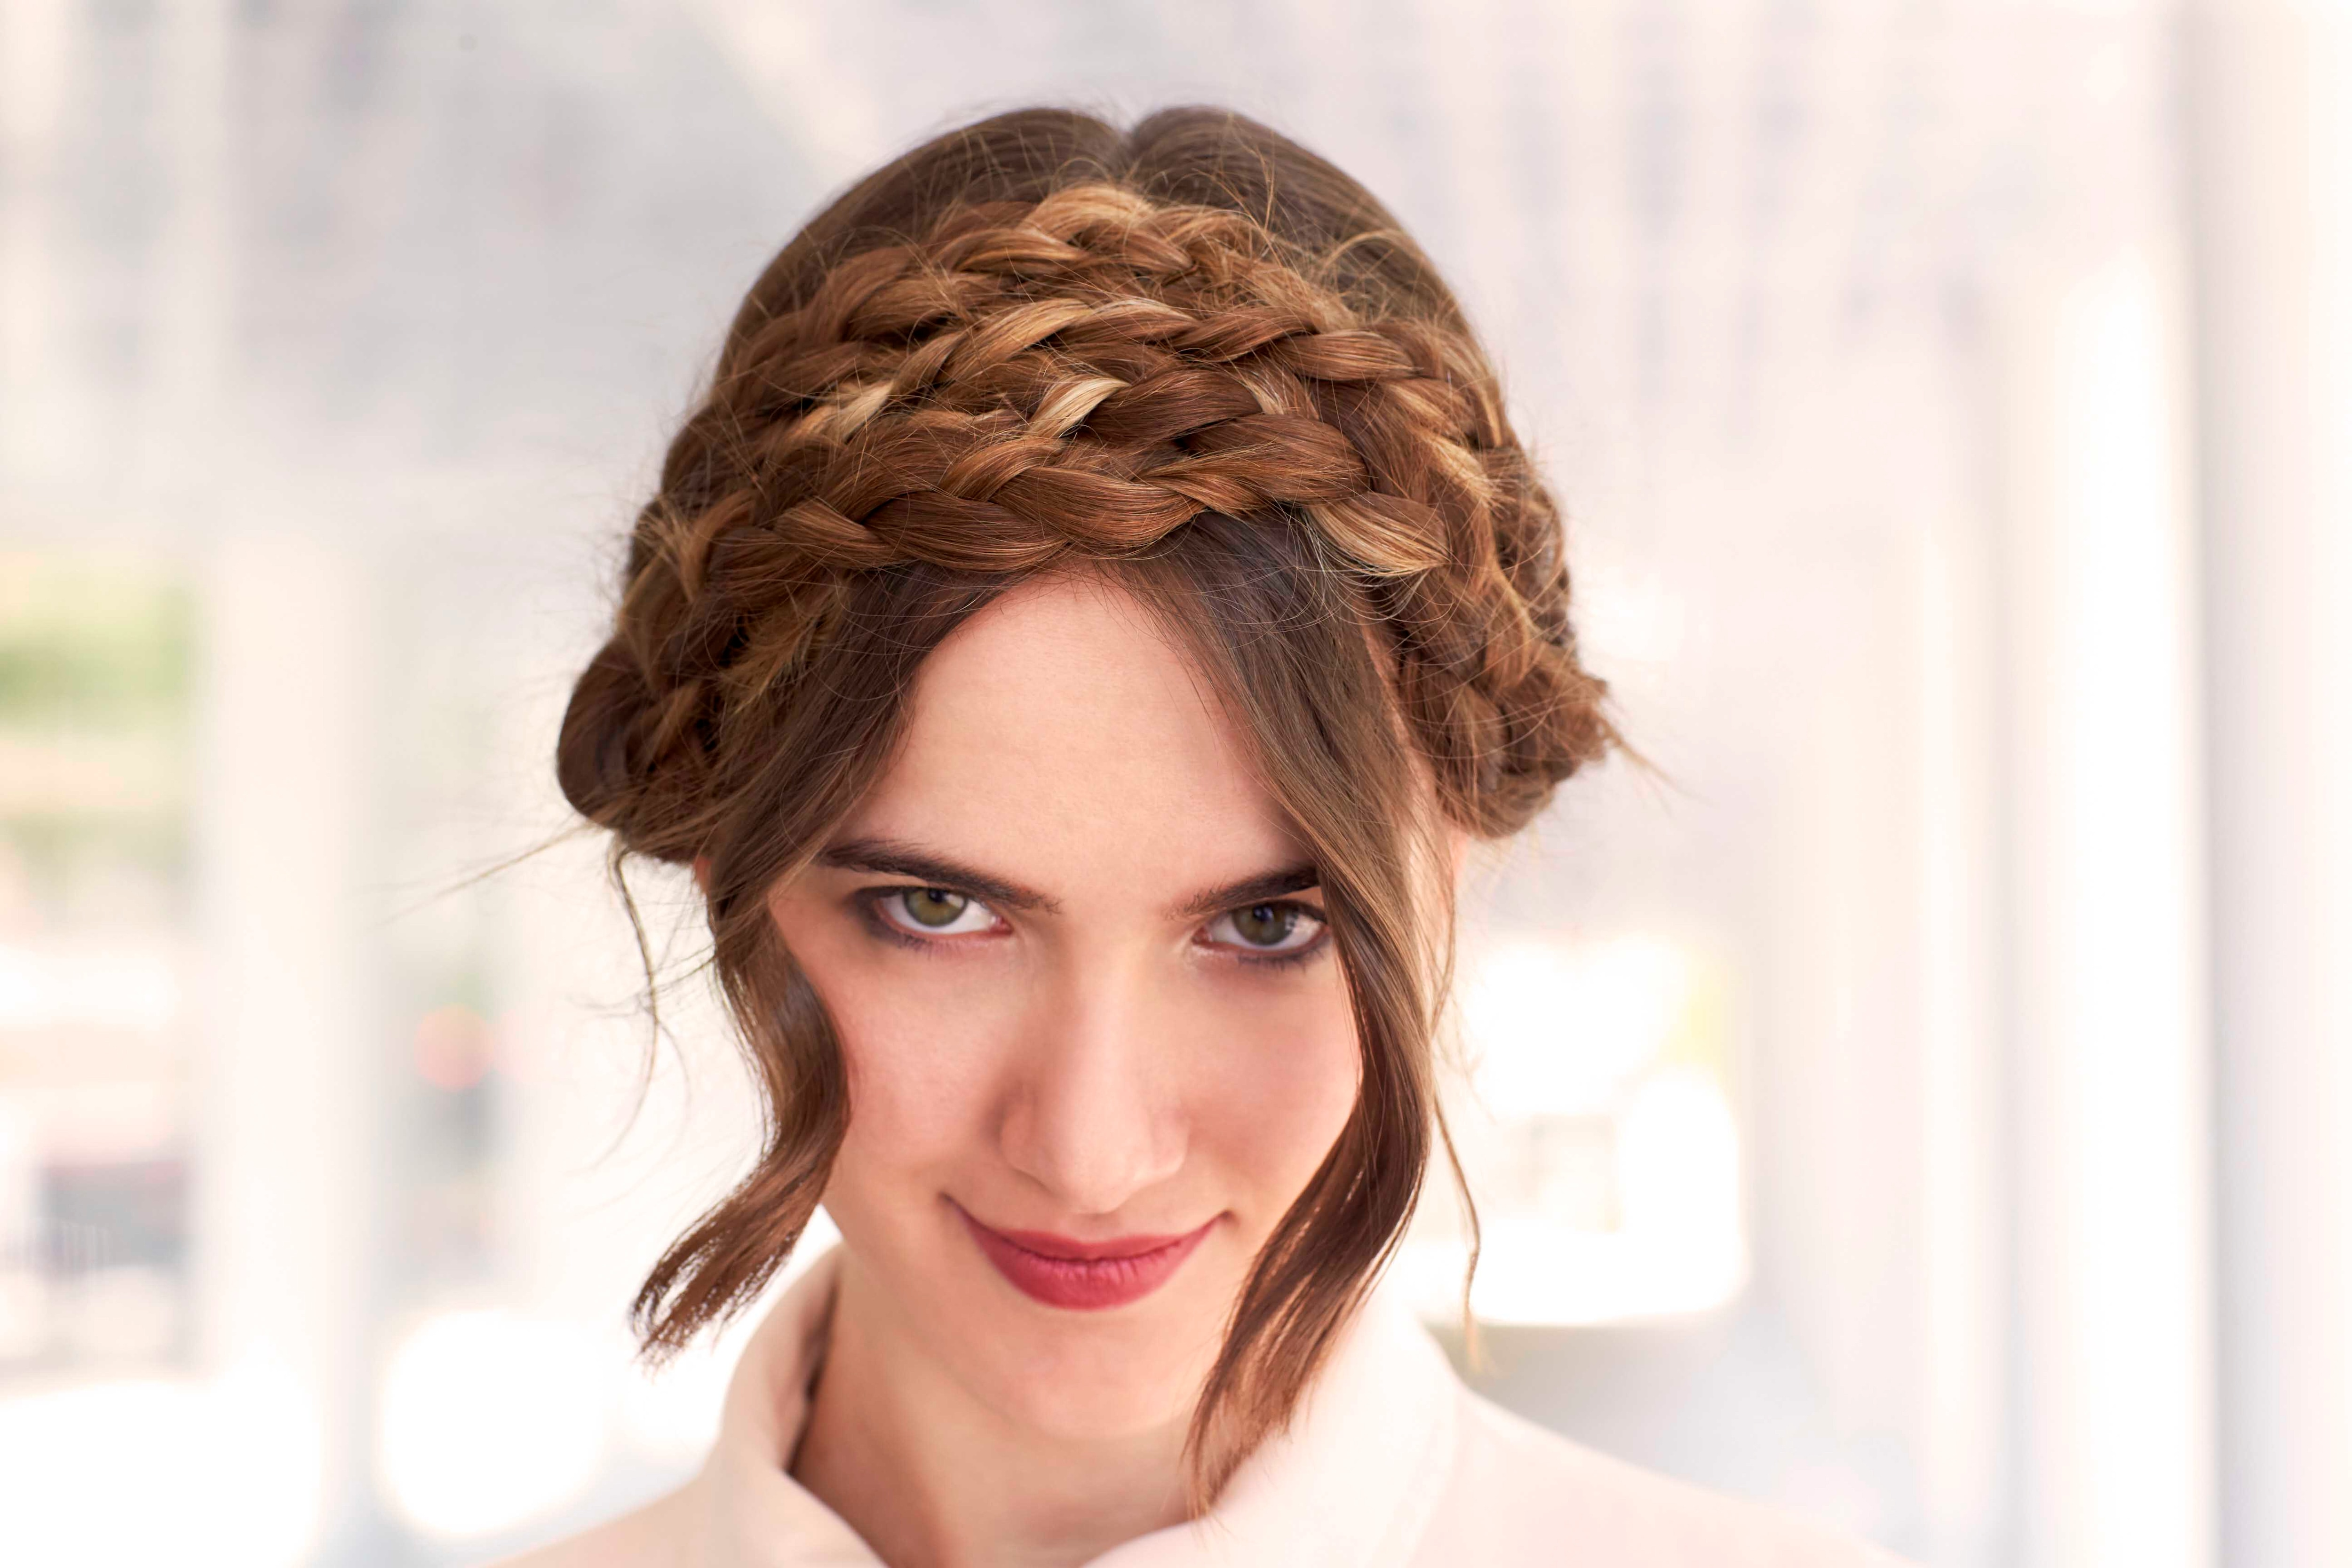 Hairstyles for thick hair braids